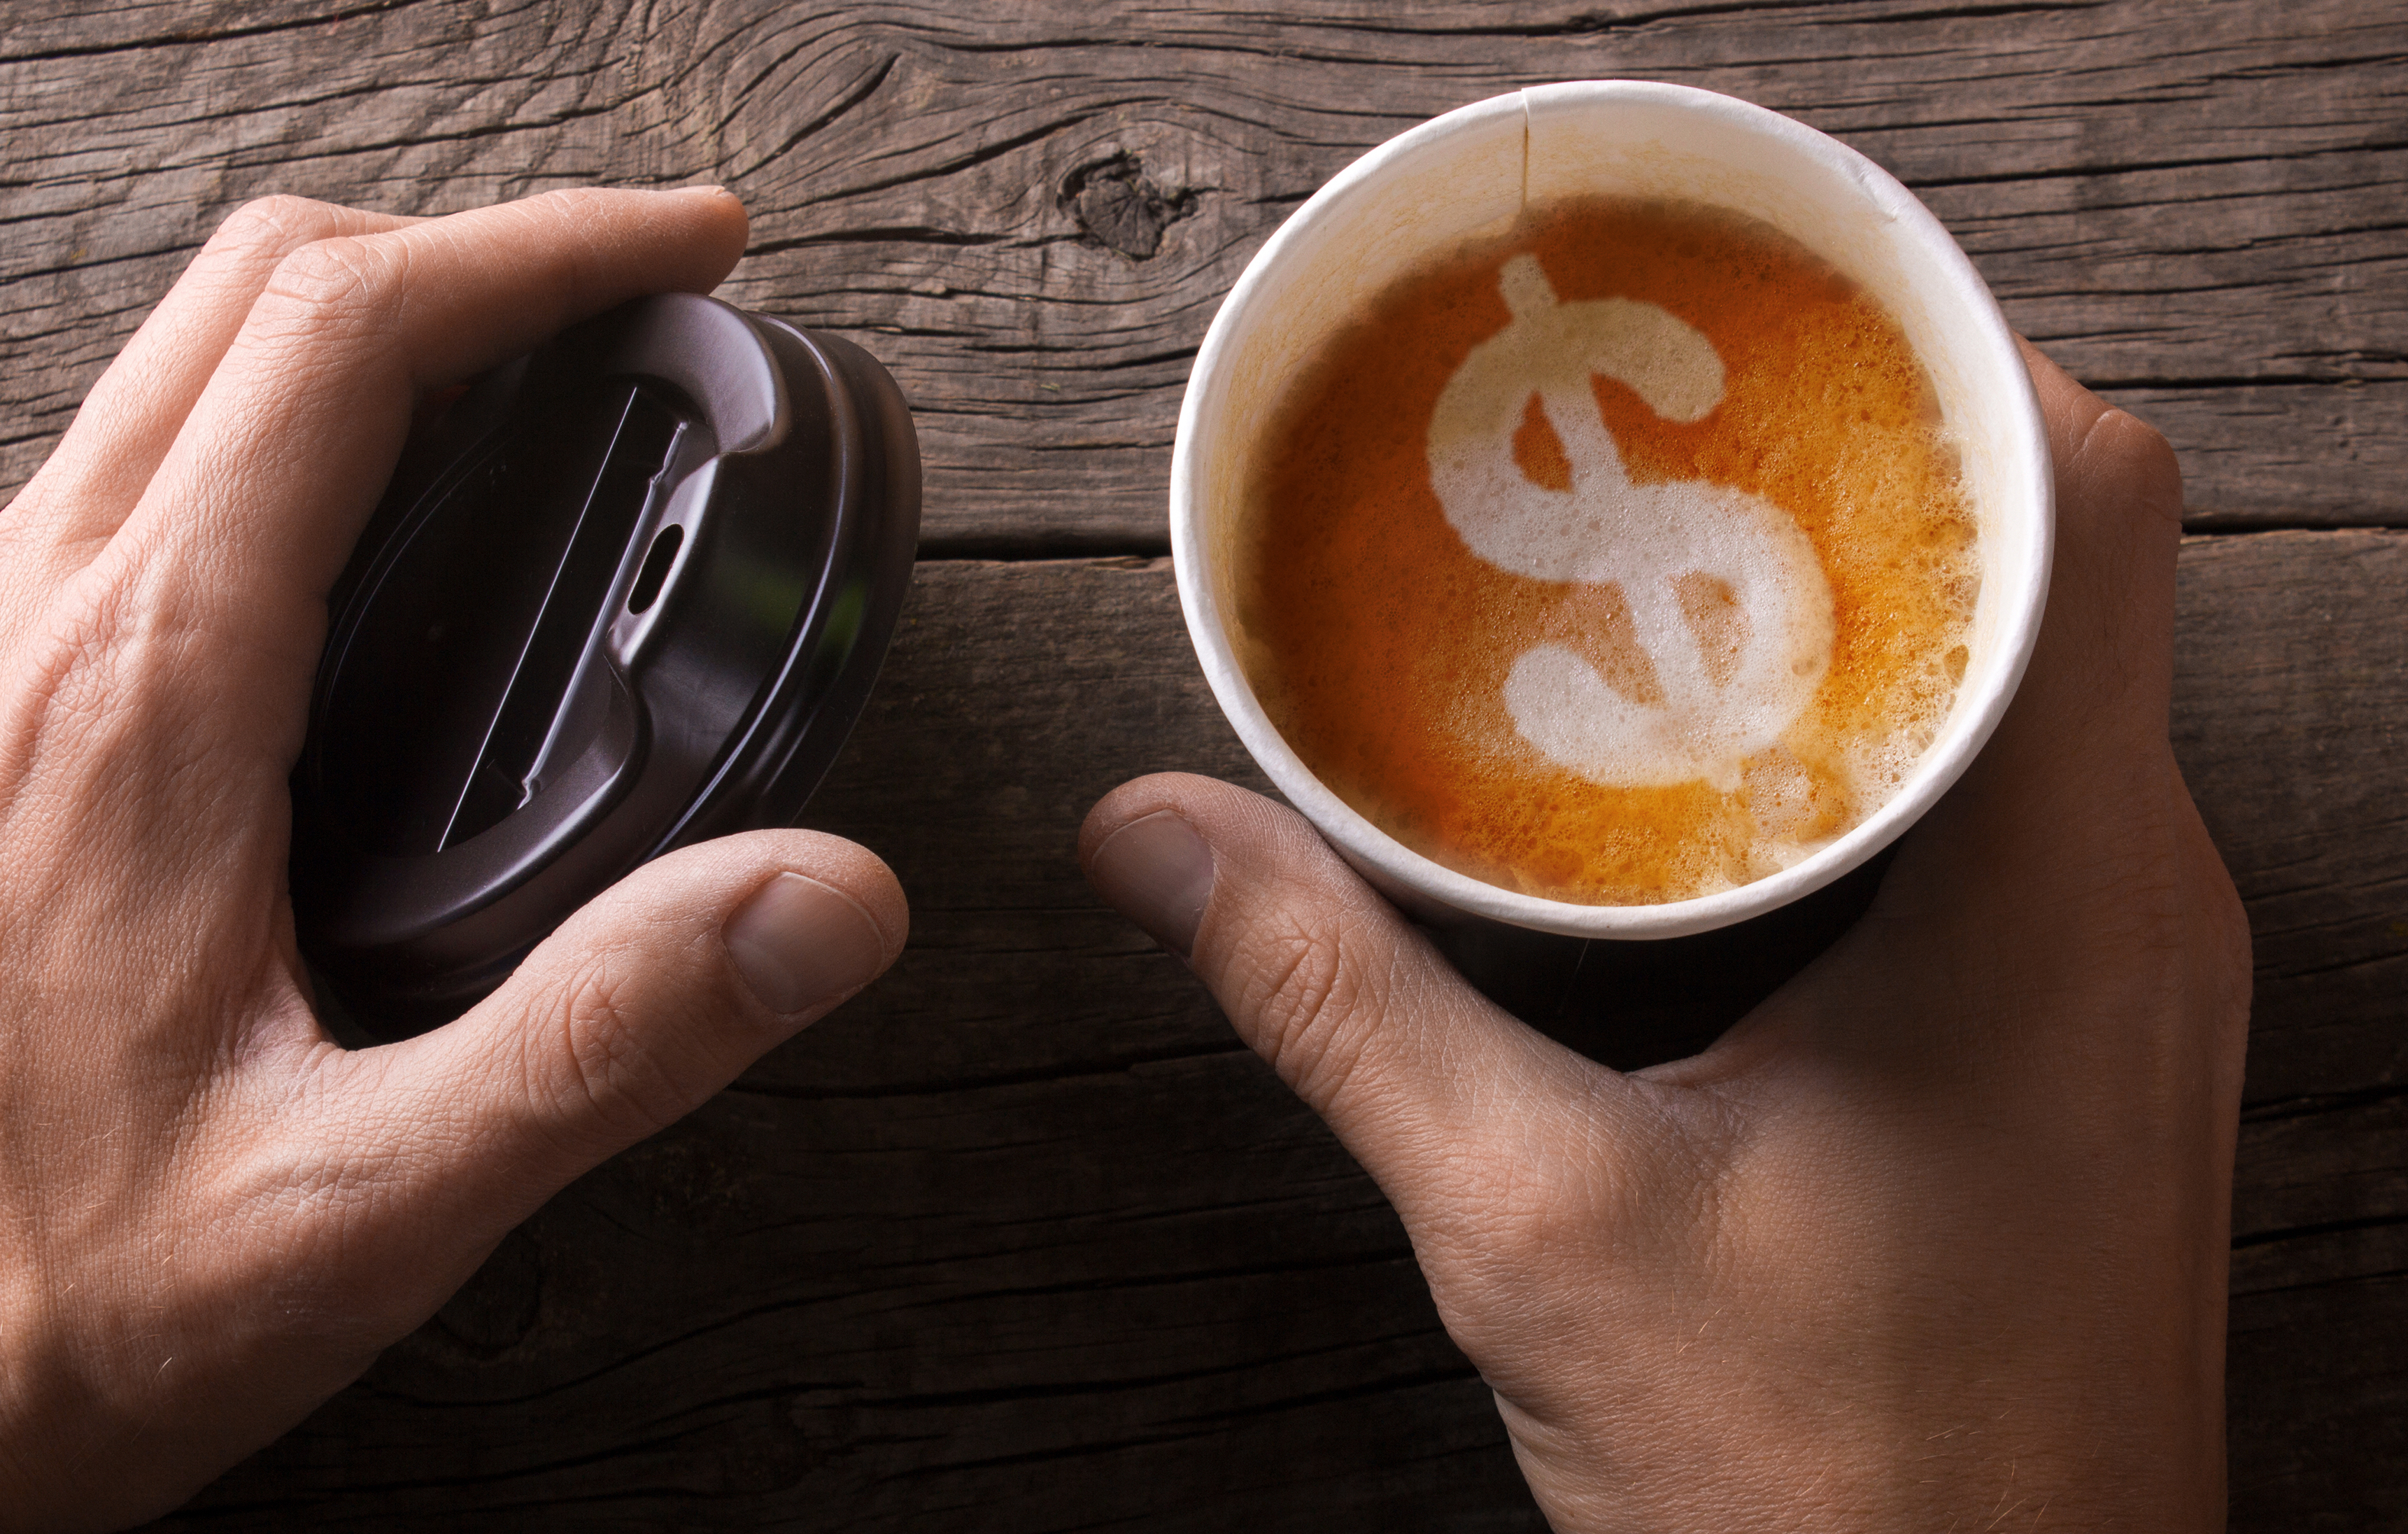 Save $1 Million by Forgoing Coffee and Joy of Any Kind in This Soulless World